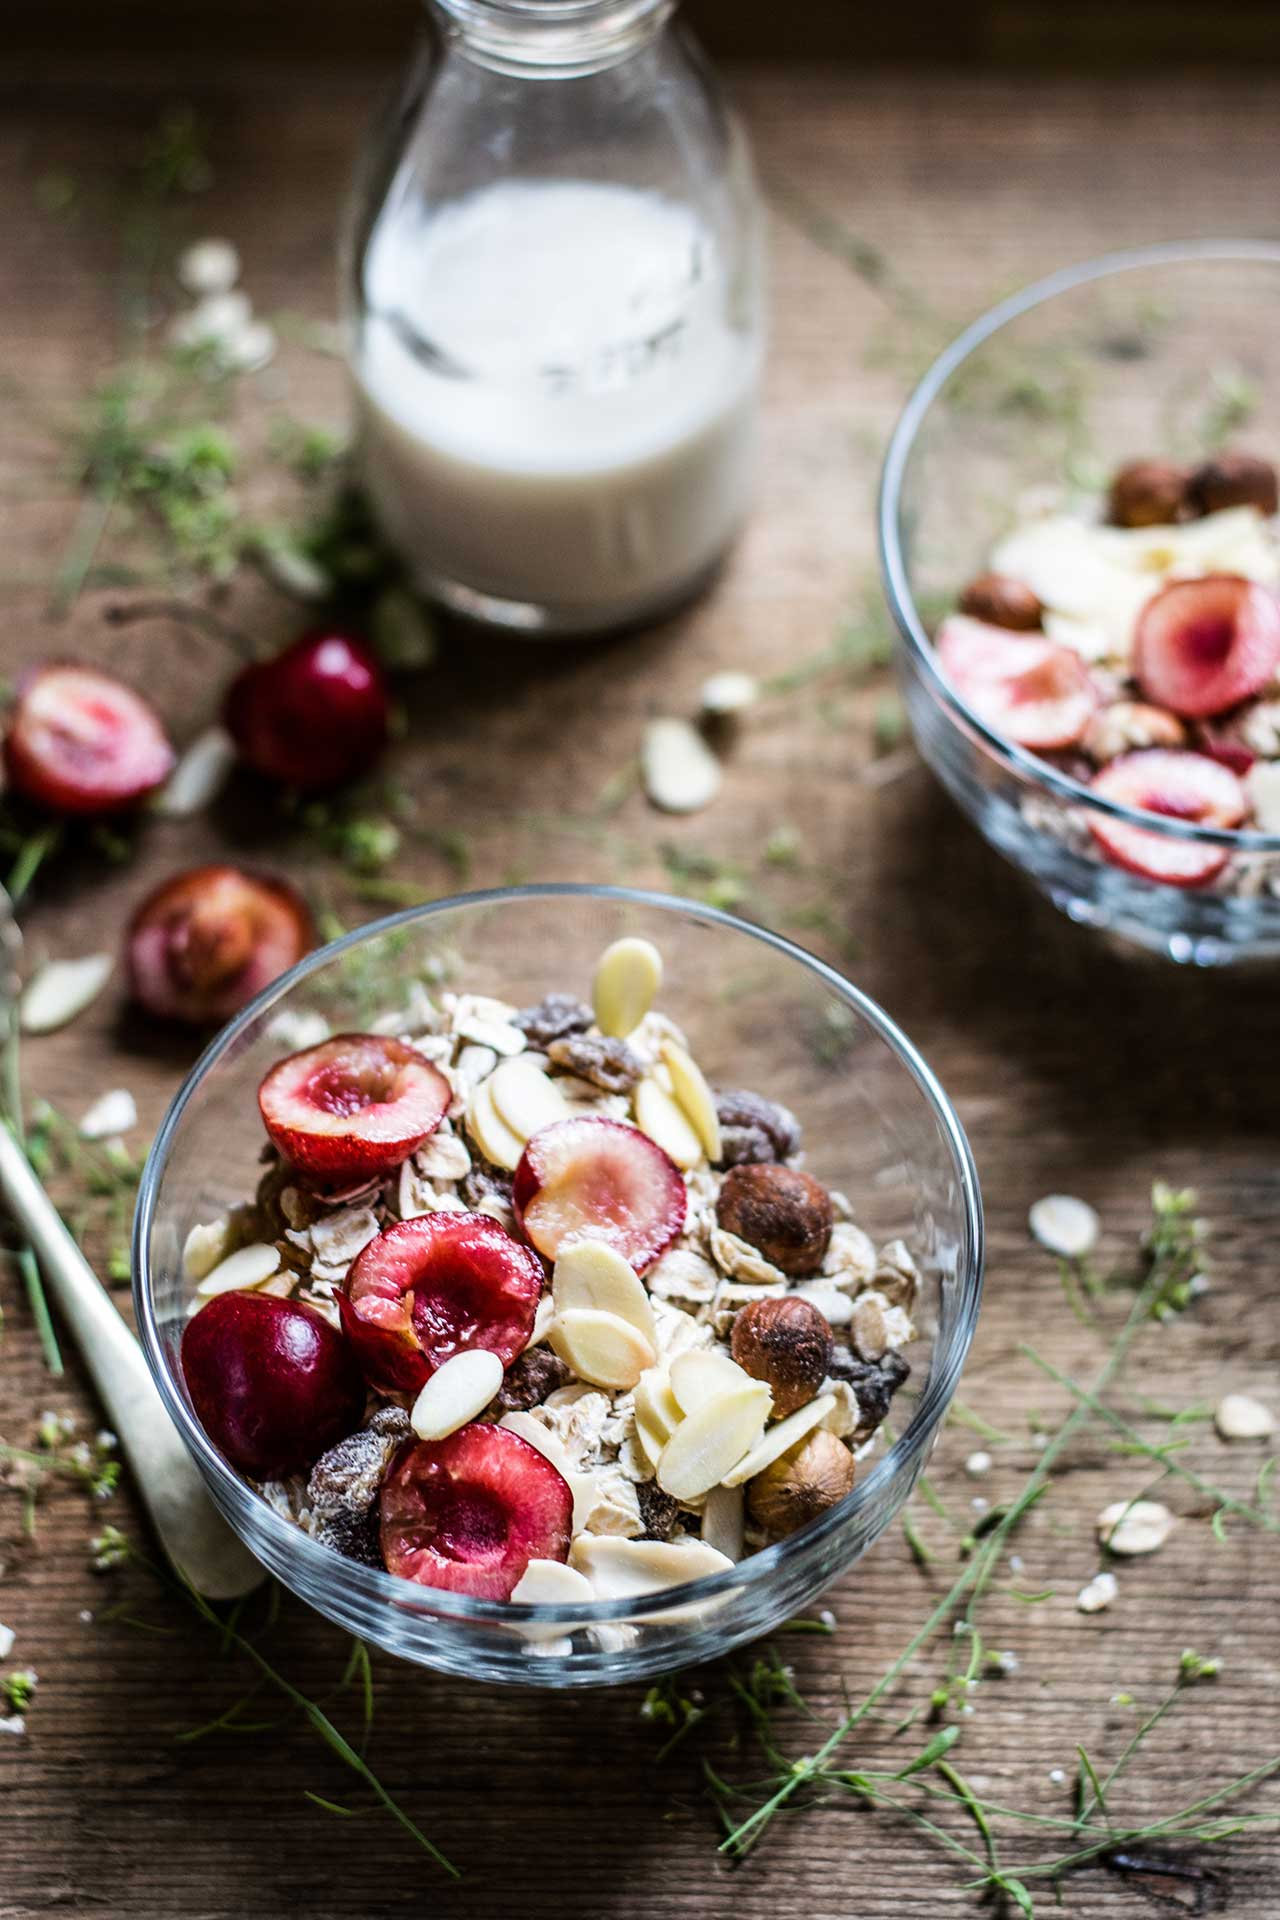 Homemade Keto Friendly Granola | Coconut Tart Cherry via @mermaidsandmojitos